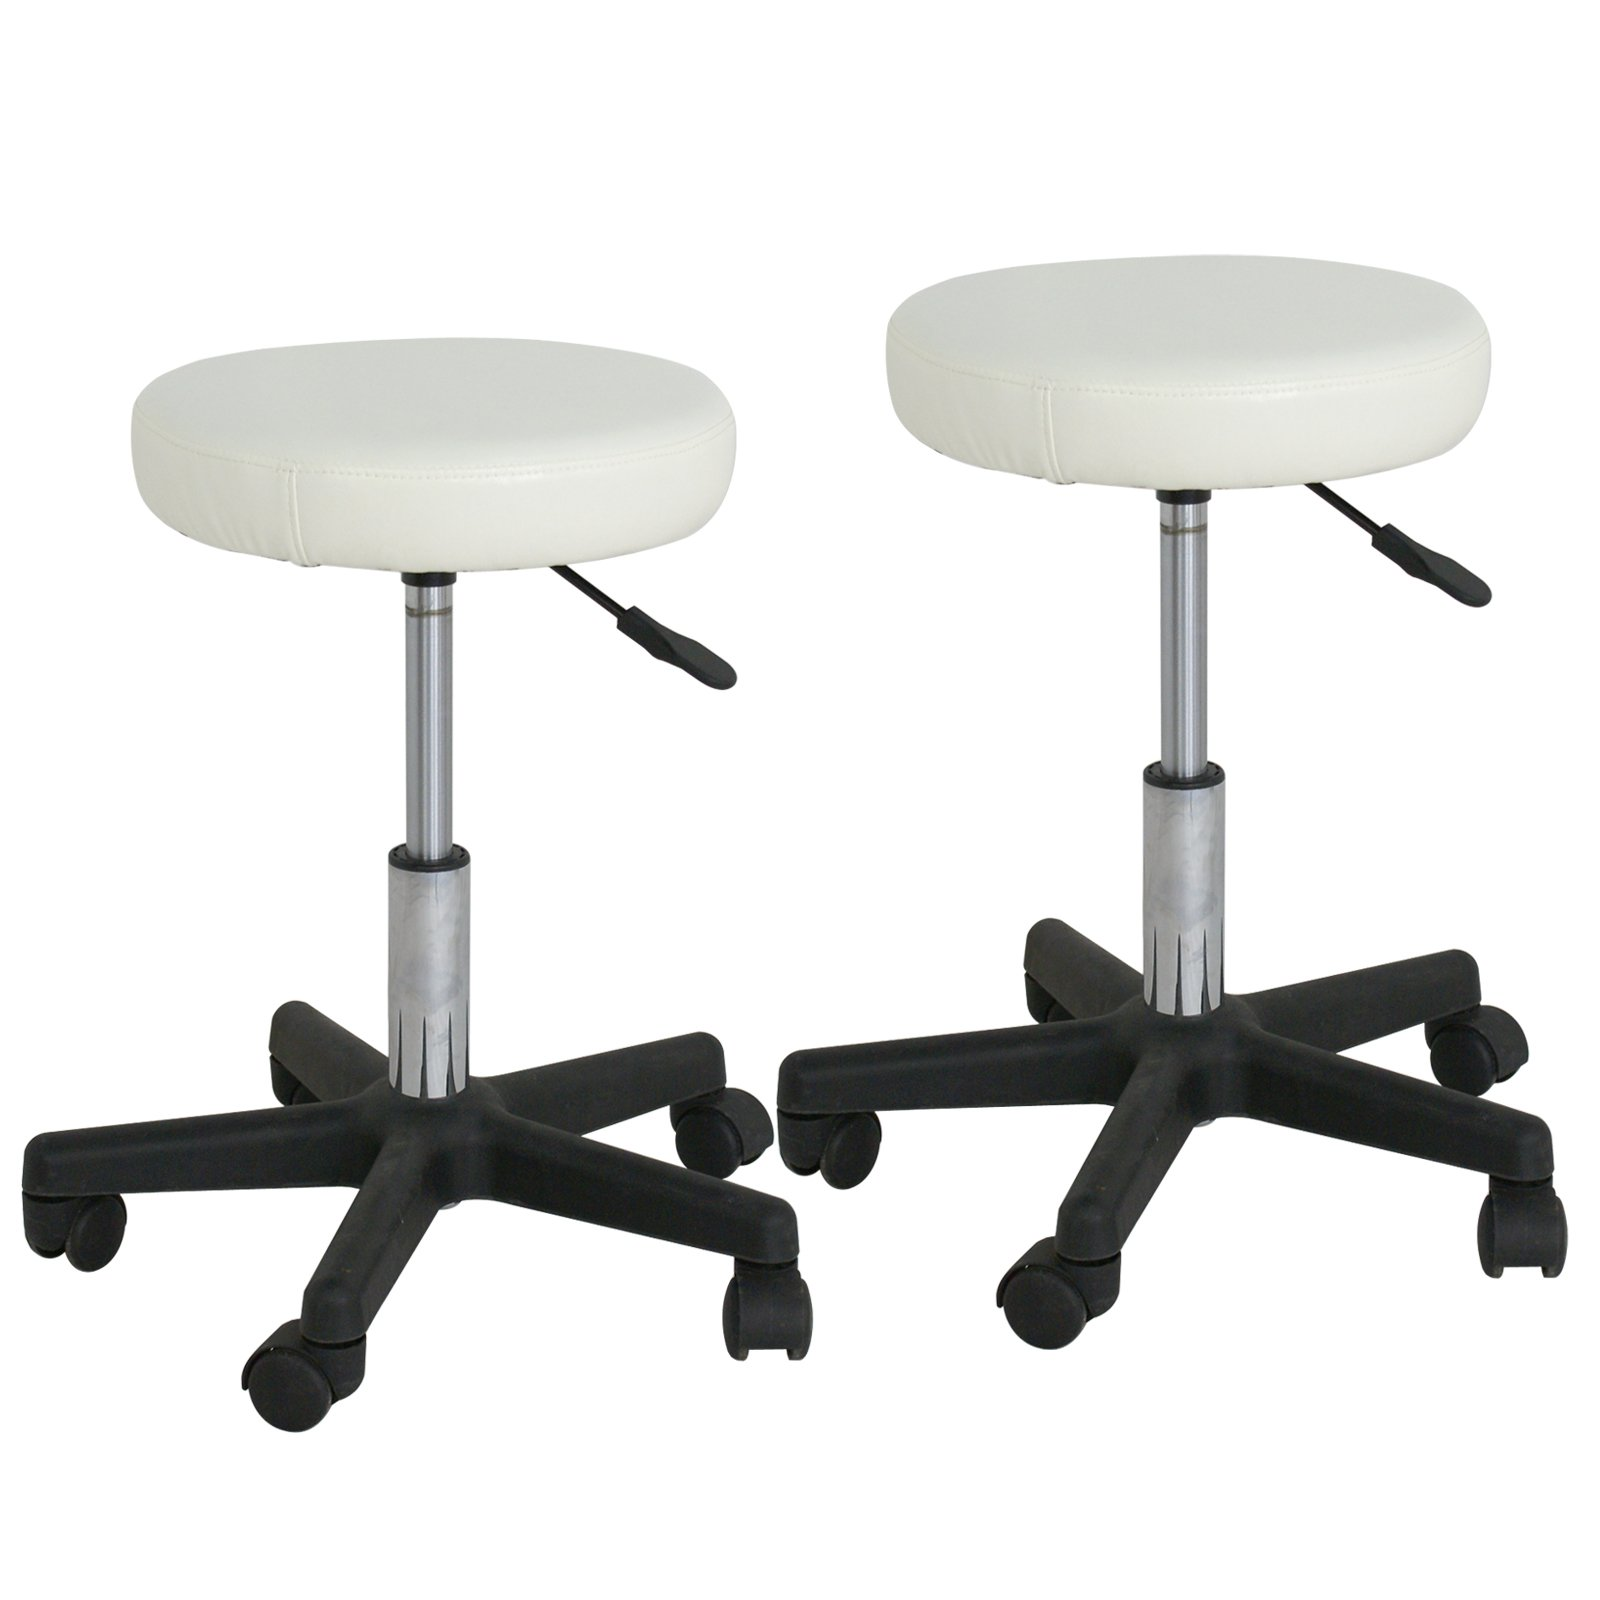 F2C Leather Adjustable Bar Stools Swivel Chairs Facial Massage Spa Salon Stool with Wheels White/Black (2PCS White)